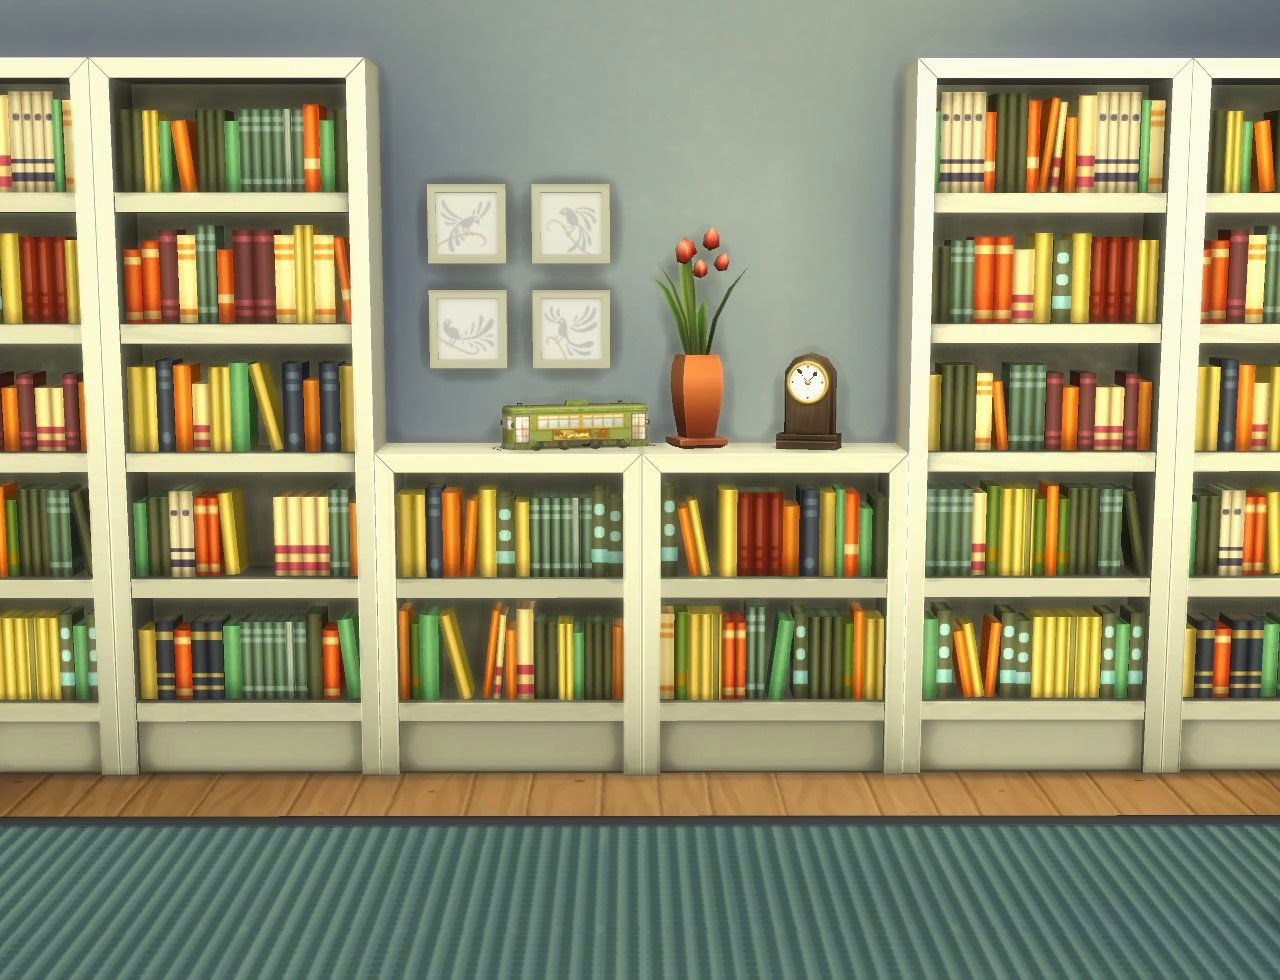 Very Impressive portraiture of My Sims 4 Blog: Moderate and Subordinate Intellect Bookcases by  with #A0692B color and 1280x980 pixels